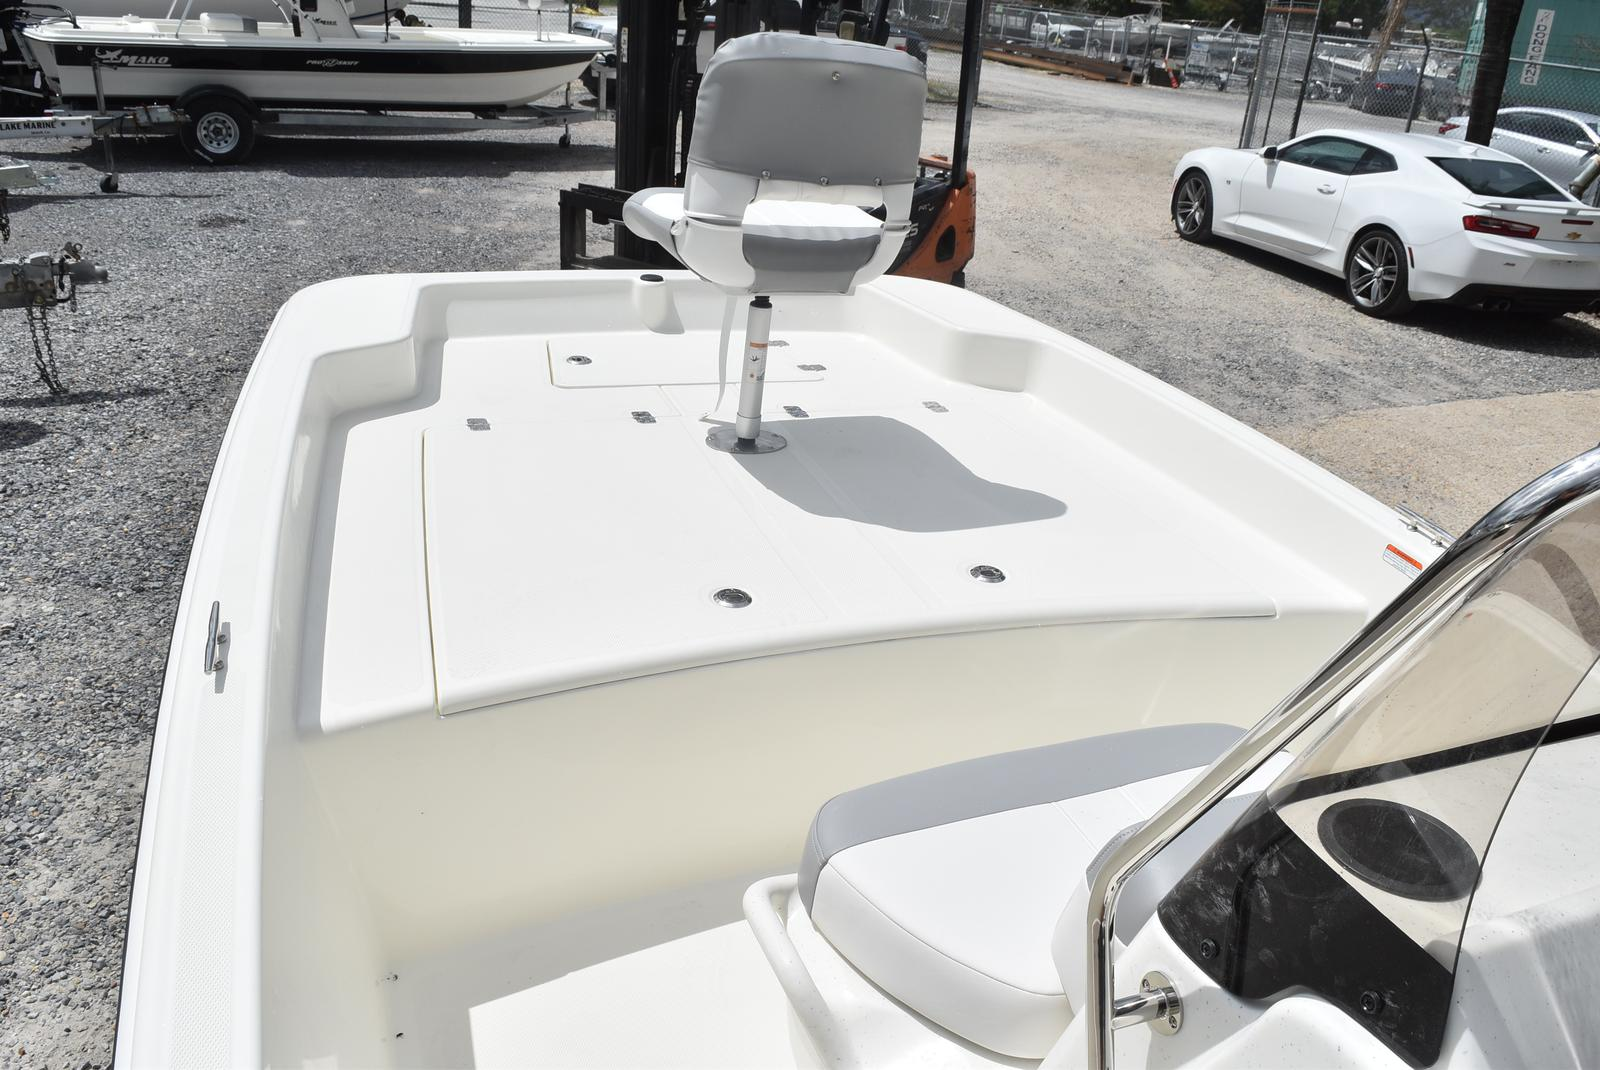 2020 Mako boat for sale, model of the boat is Pro Skiff 17, 75 ELPT & Image # 442 of 702